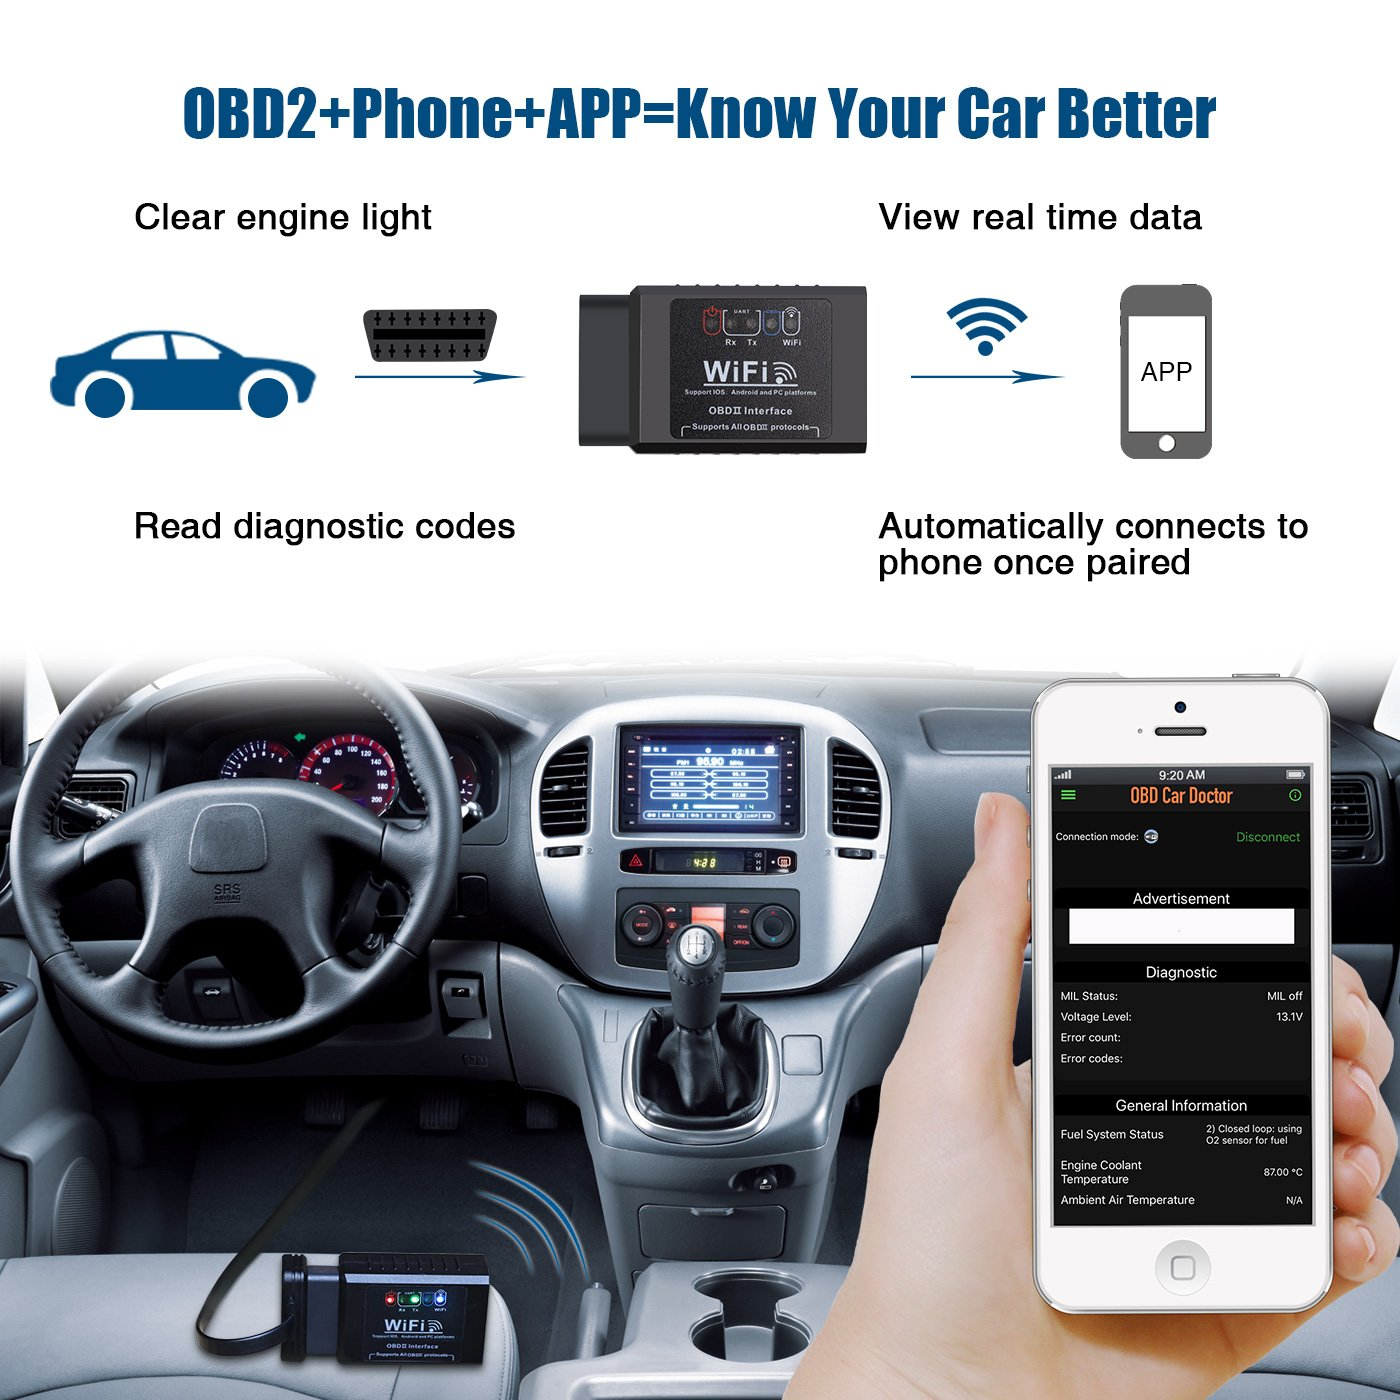 Car WiFi OBD2 Scanner OBDII Code Reader Scan Tool Powertiger Scanner Adapter Check Engine Light Diagnostic Tool for iOS Android Windows with OBD 2 Extension Cable 4347514783